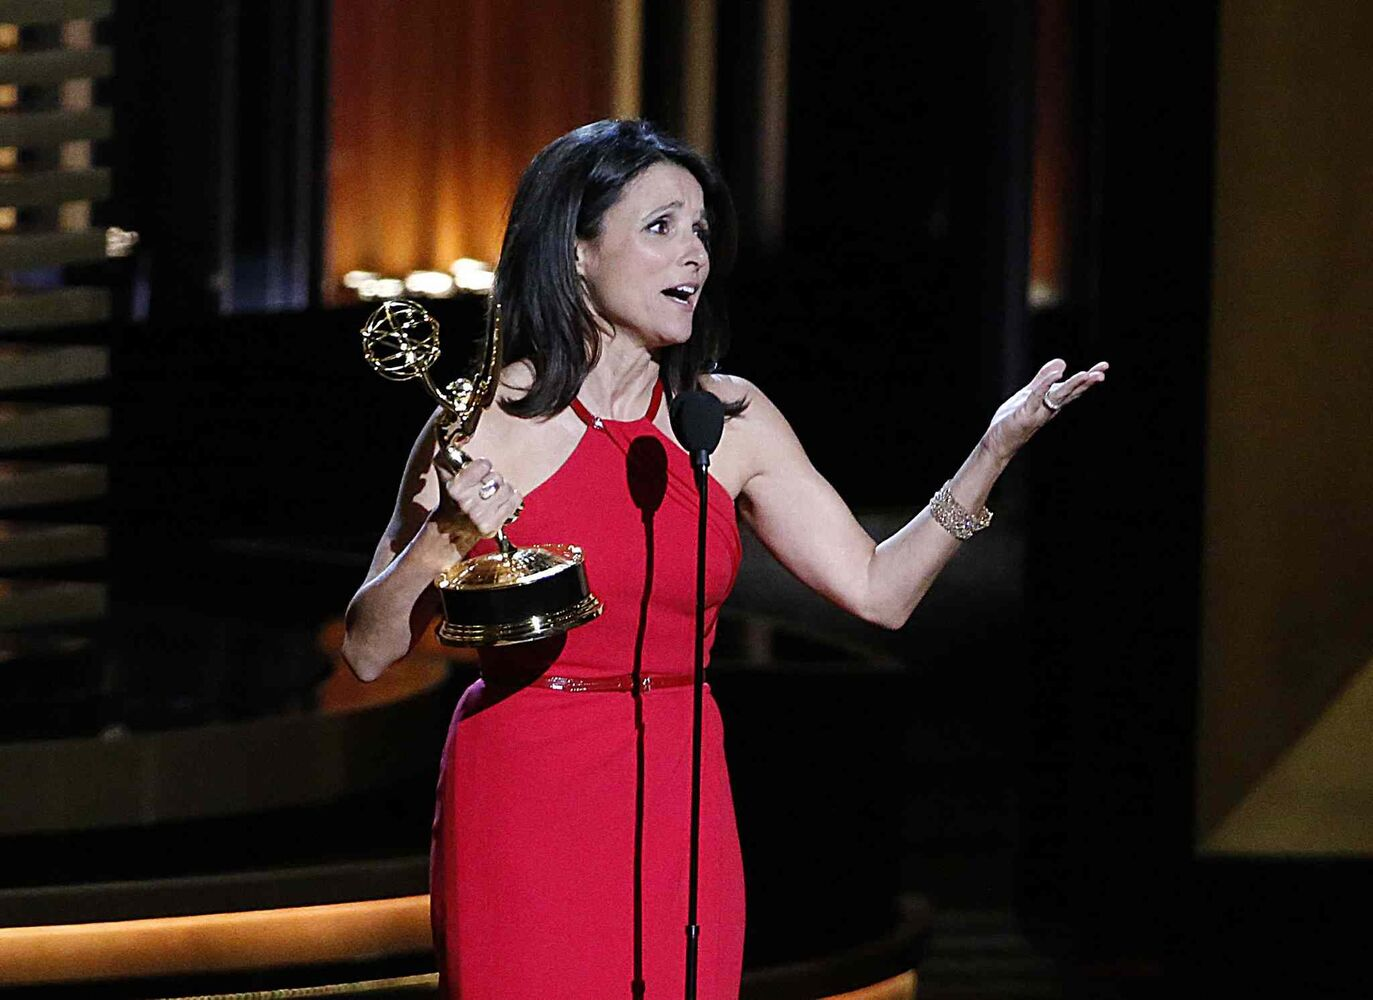 Julia Louis-Dreyfus accepts her Emmy for Best Actress in a Comedy Series for Veep. (Tribune Media MCT)